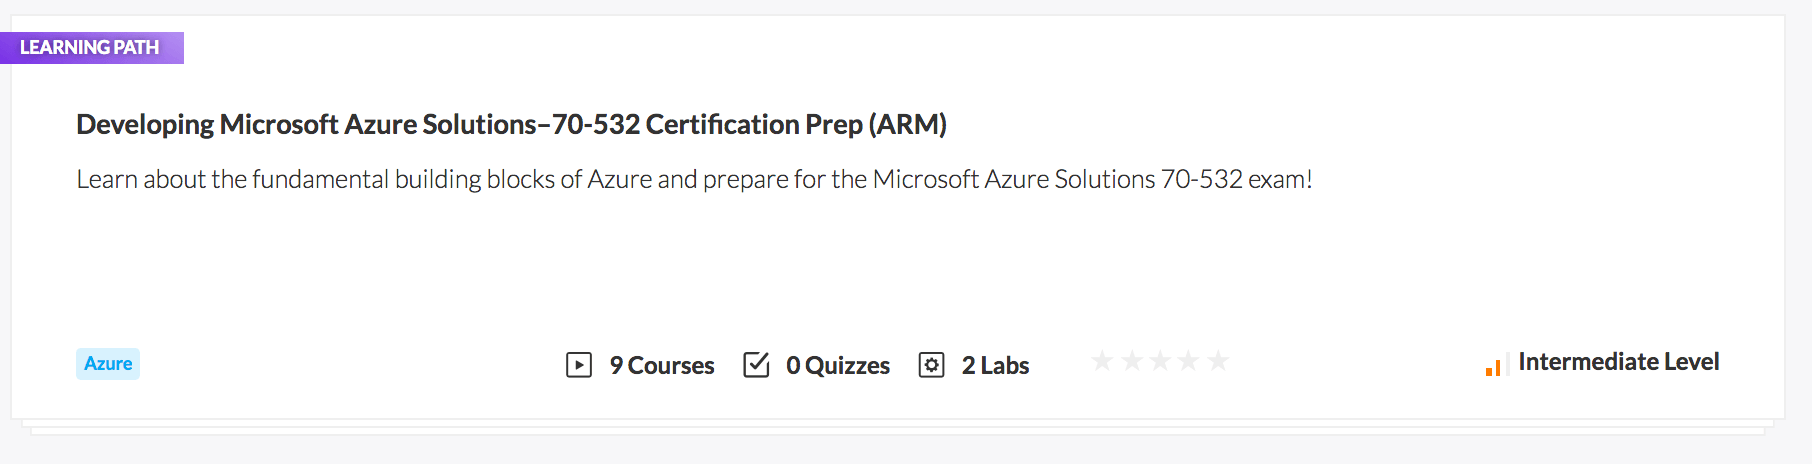 Developing Microsoft Azure Solutions - 70-532 Certification